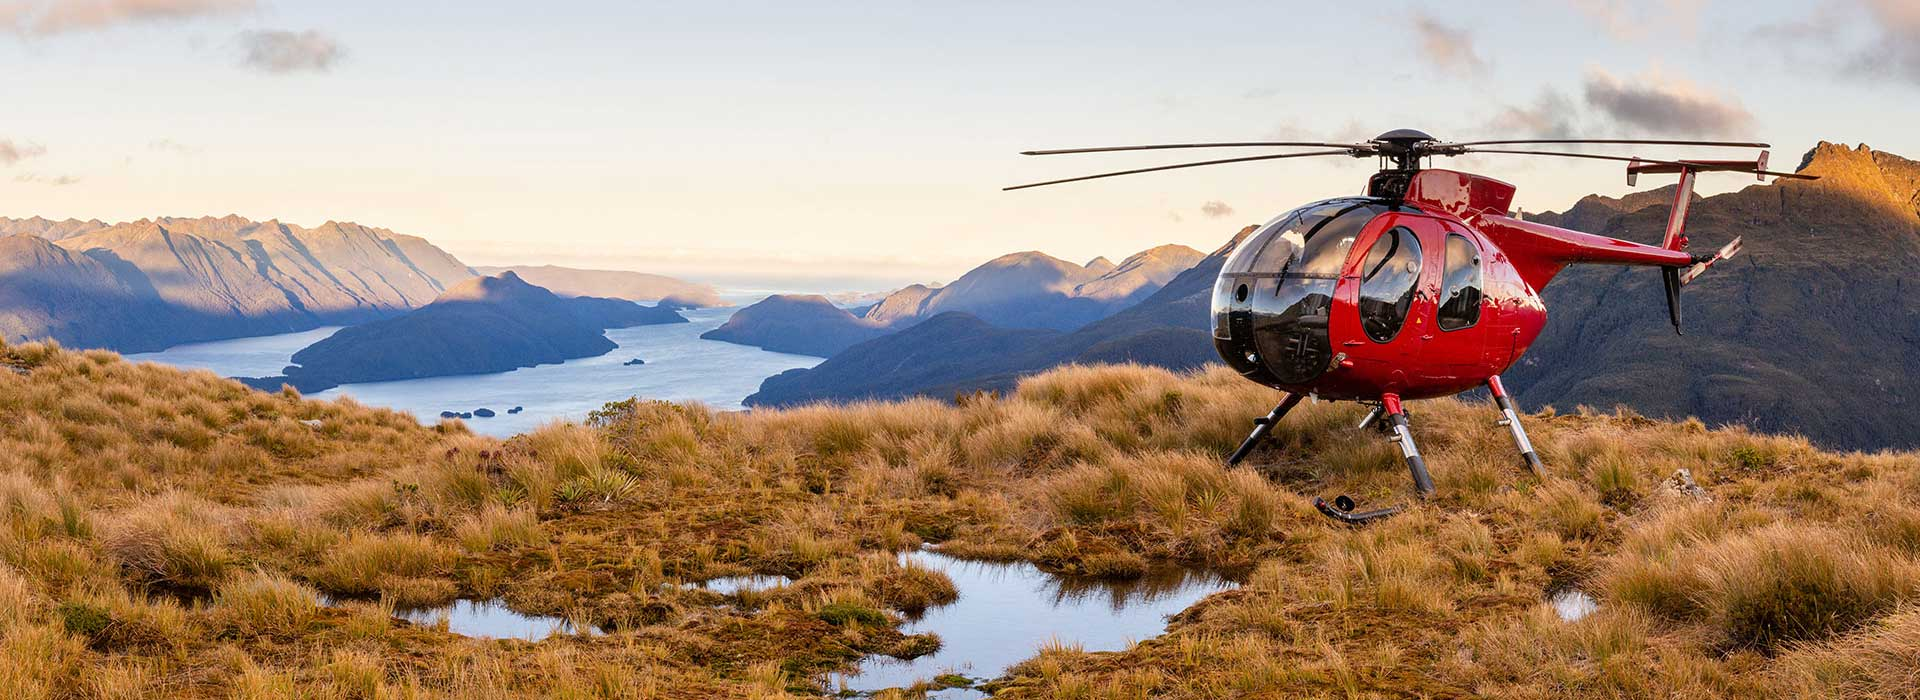 Fiordland Helicopter Charters